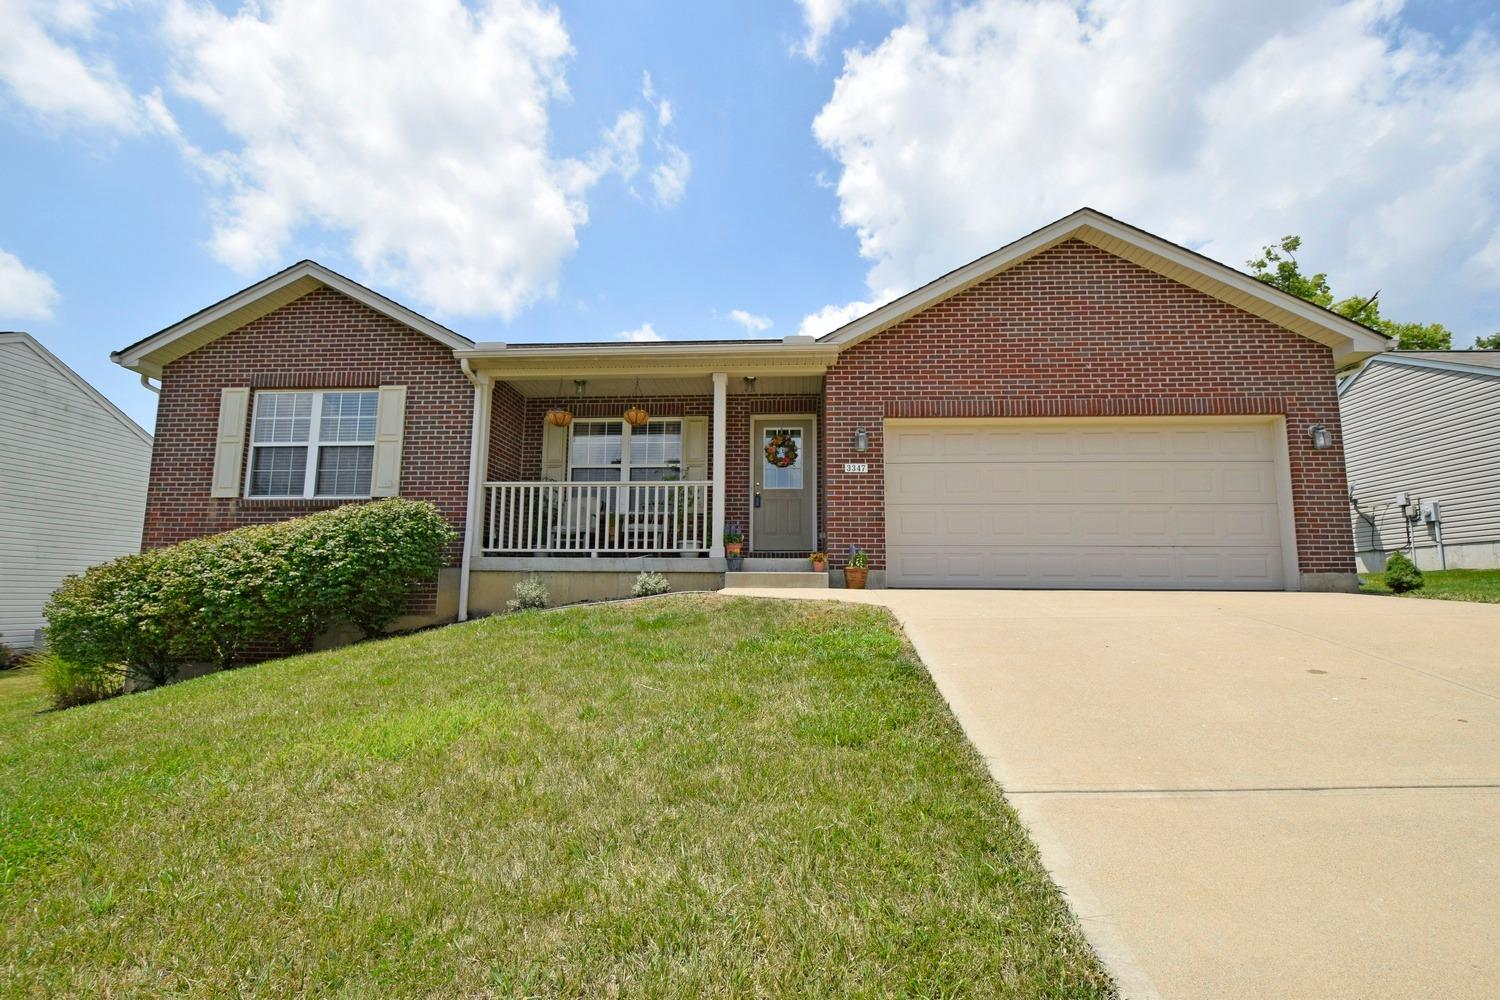 Photo 1 for 3347 Summitrun Dr Independence, KY 41051